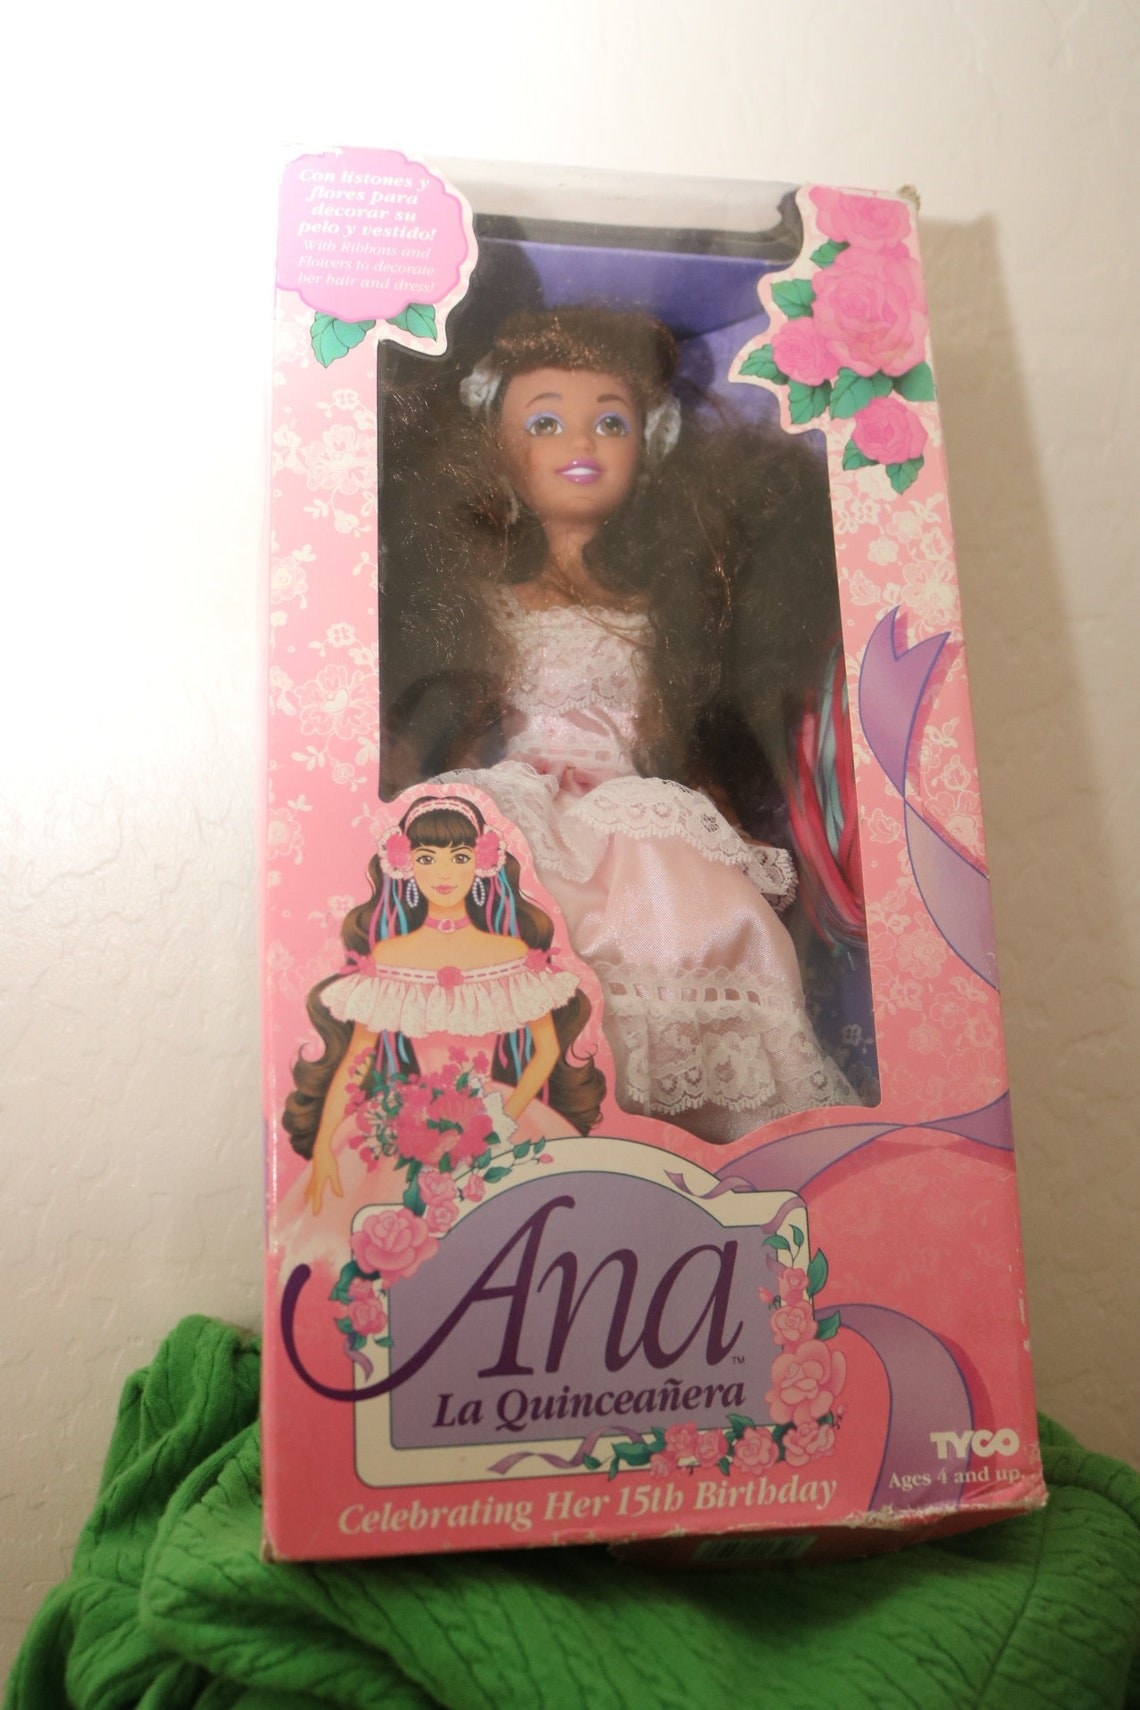 An Ana La Quinceanera doll in her box